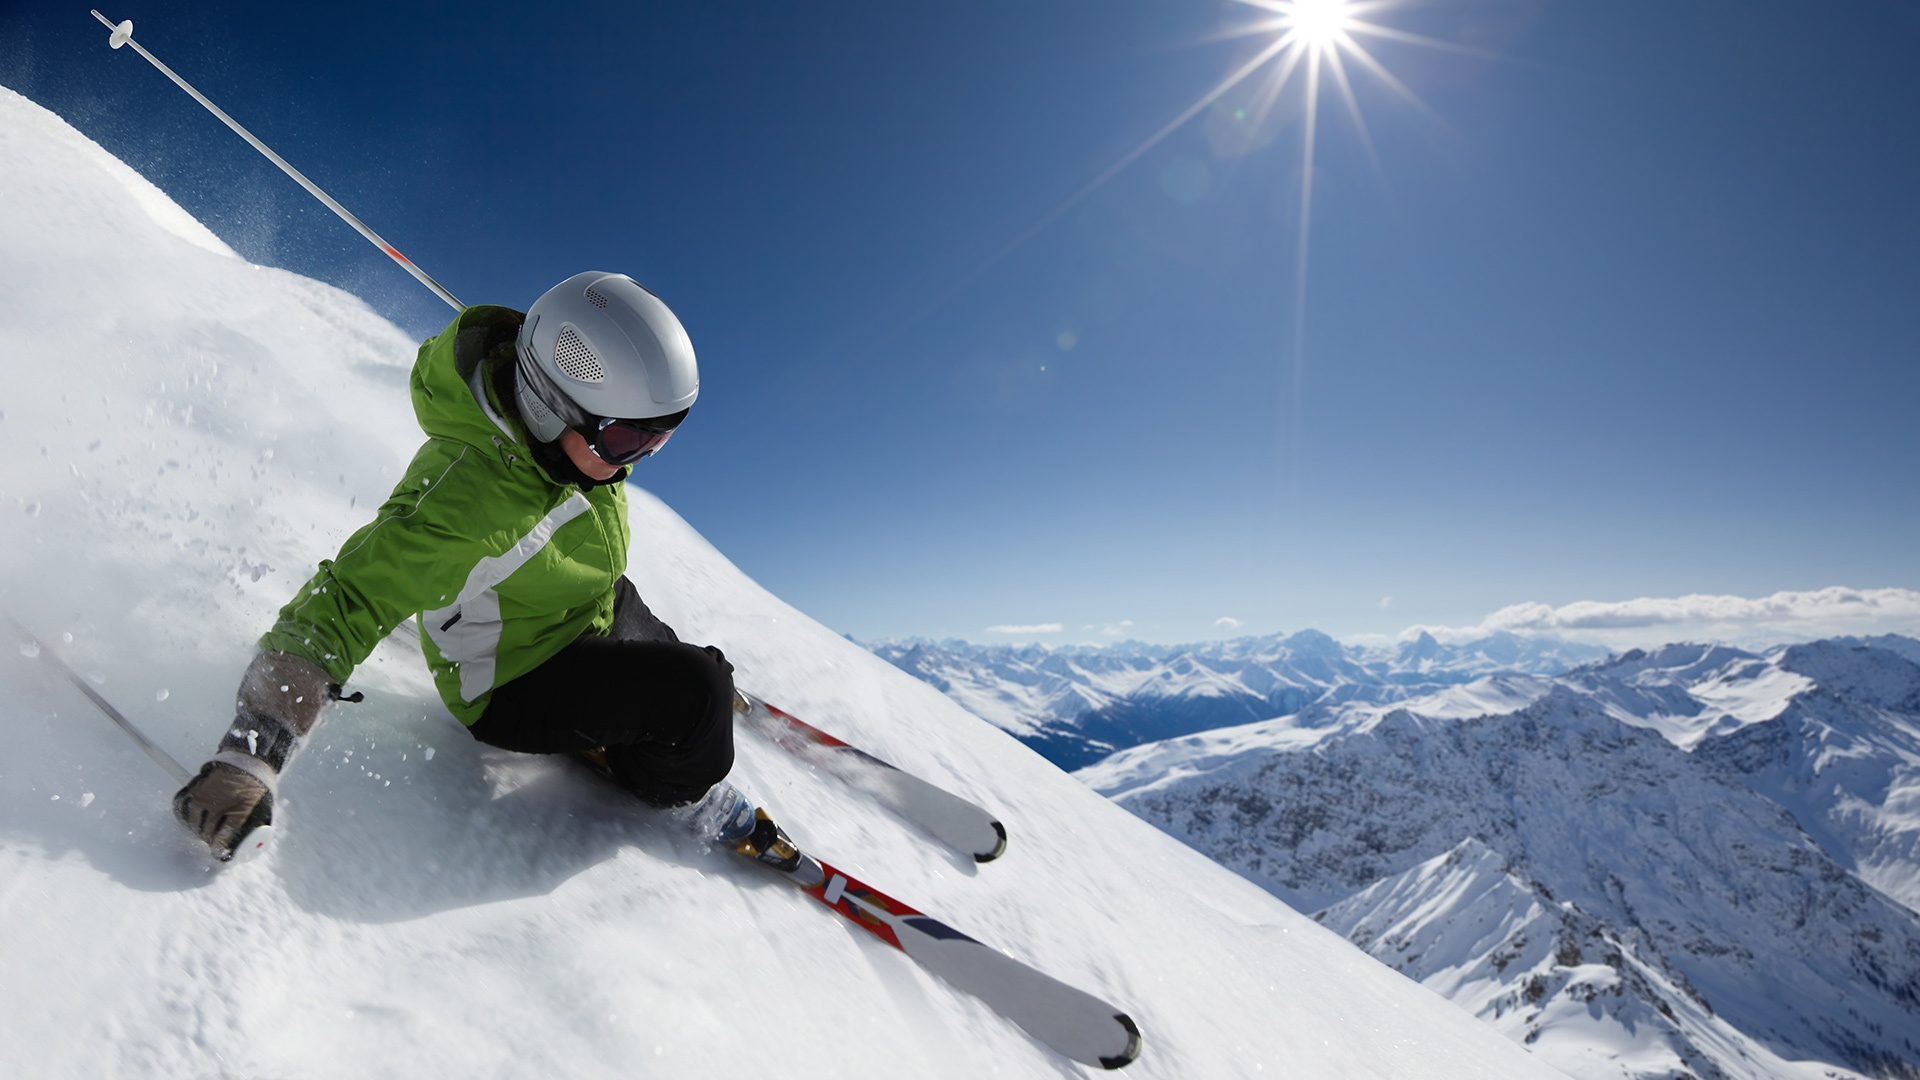 Skiing Wallpaper Skiing Hd Wallpaper Background Image 1920x1080 Id 341894